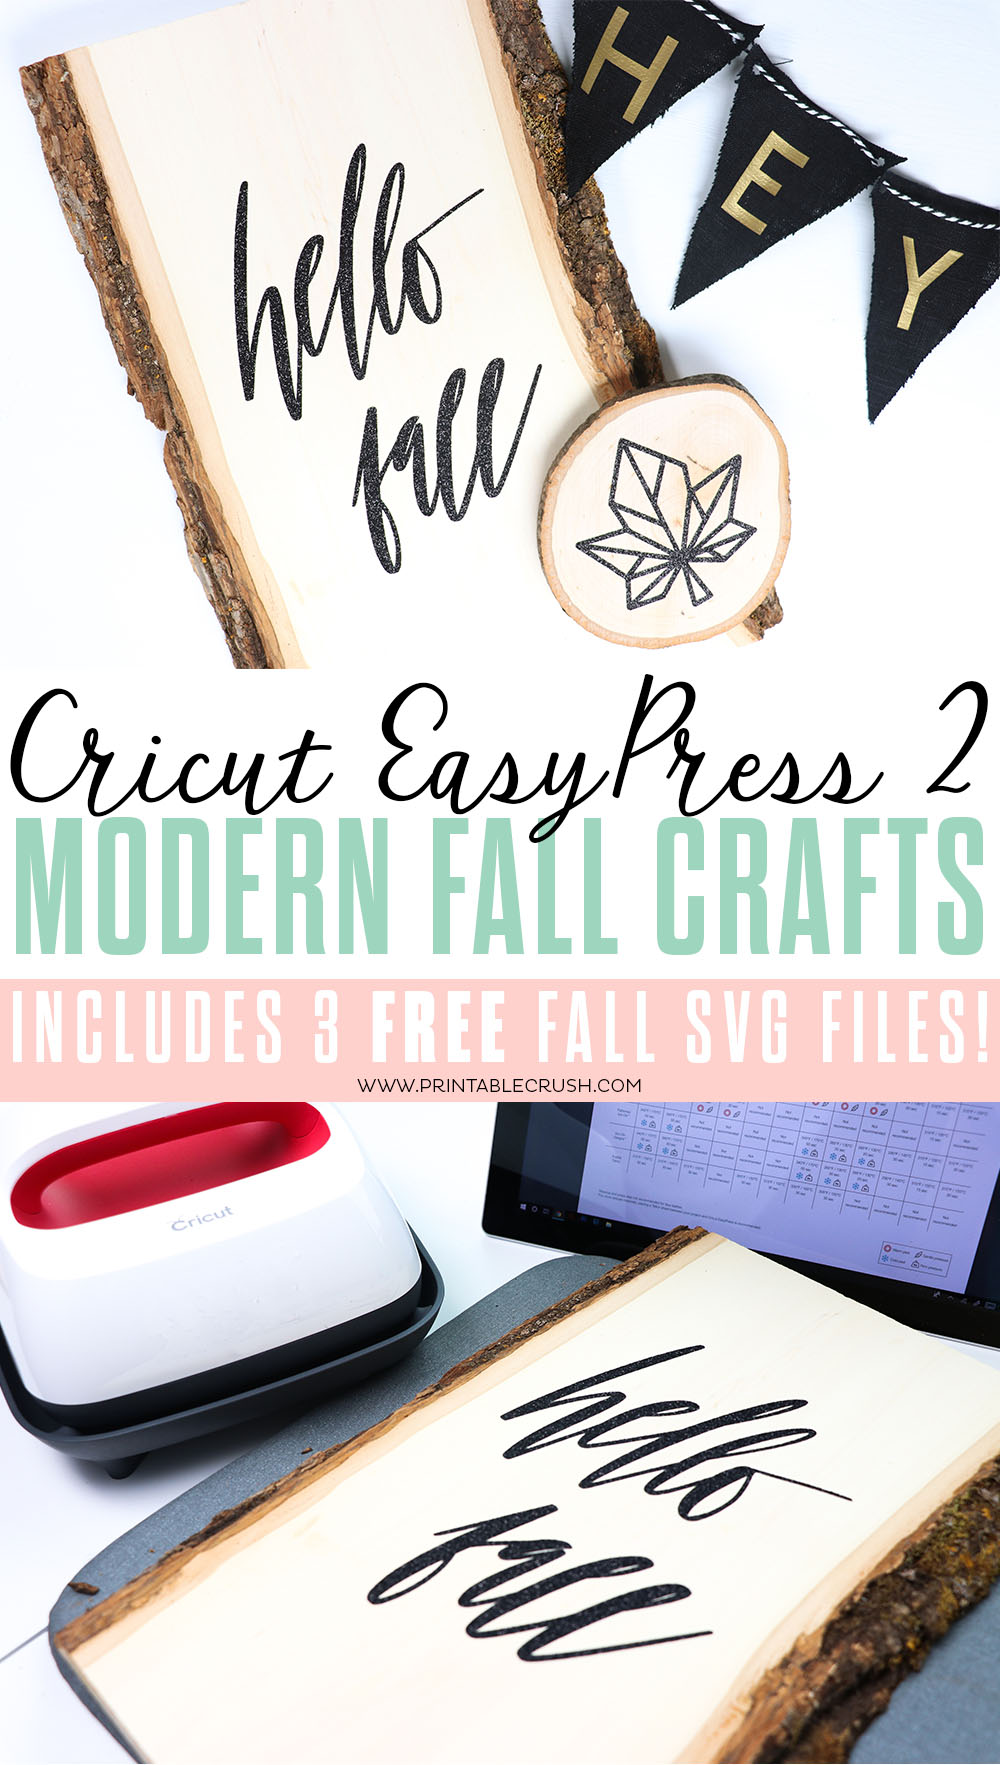 Easily create your Fall decor with these Cricut EasyPress 2 Modern Fall Crafts and FREE Fall SVG Files!